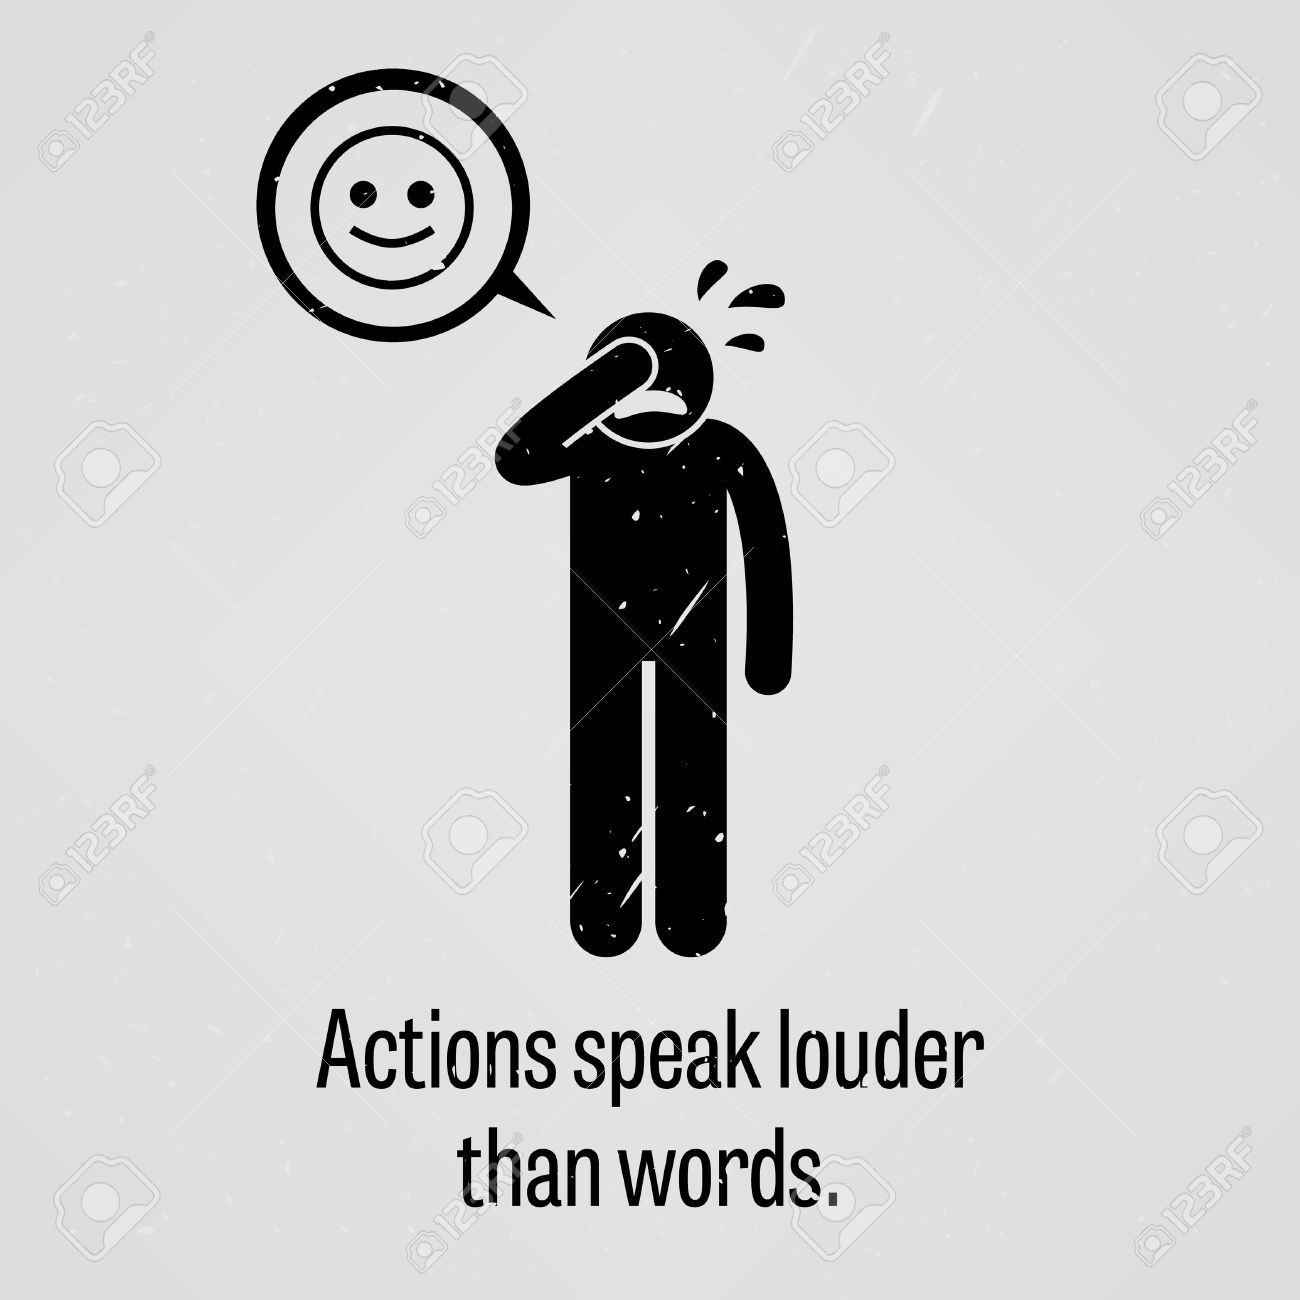 speak louder Tesol quarterly, vol 19, no 2, june 1985 actions speak louder than  words: paralanguage, communication, and education alastair pennycook.